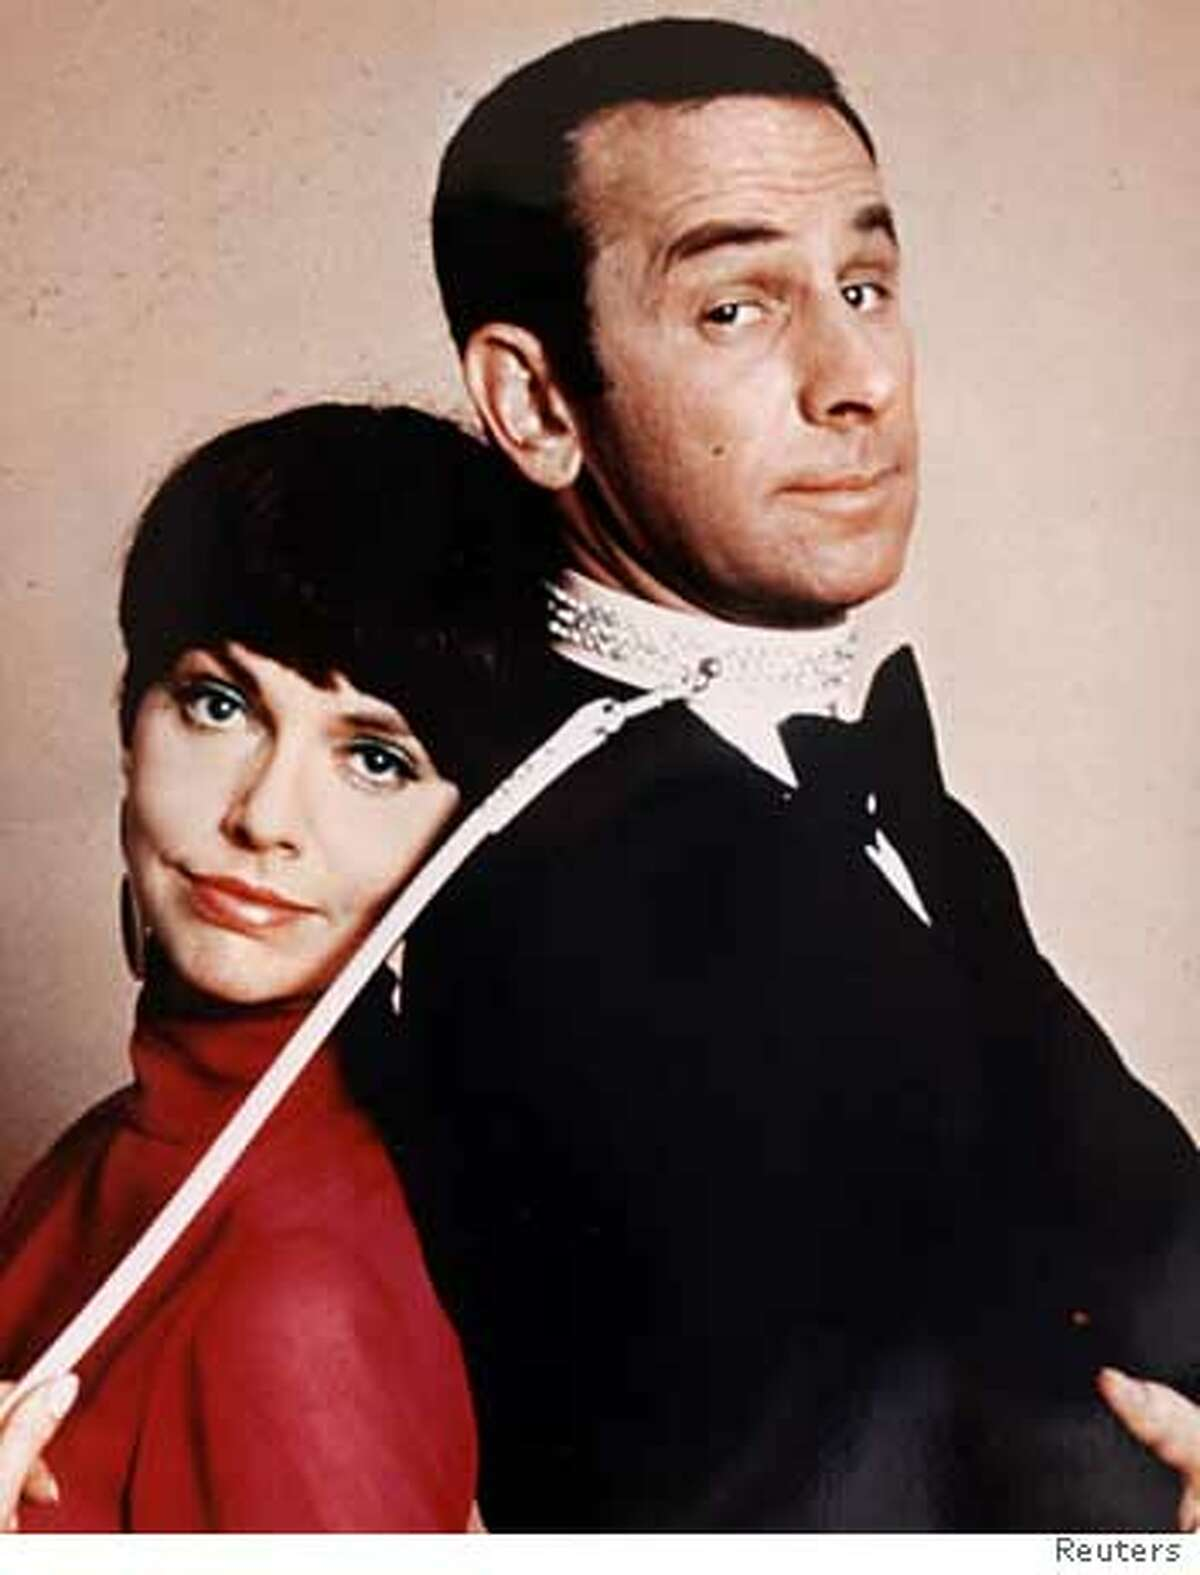 """Actor Don Adams (R) and co-star Barbara Feldon from the television show """"Get Smart"""" are seen in this file publicity picture from 1966. Adams, best known for his role as clumsy secret agent Maxwell Smart in the 1960s television comedy, has died of a lung infection, his agent said on Septenber 26, 2005. Adams, who had been in failing health in recent years, died at Cedars Sinai hospital in Los Angeles on Sunday night, according to agent Bruce Tufeld. NO ARCHIVES REUTERS/Files Ran on: 09-27-2005 Don Adams and Barbara Feldon were an immediate hit when Get Smart premiered in 1965."""